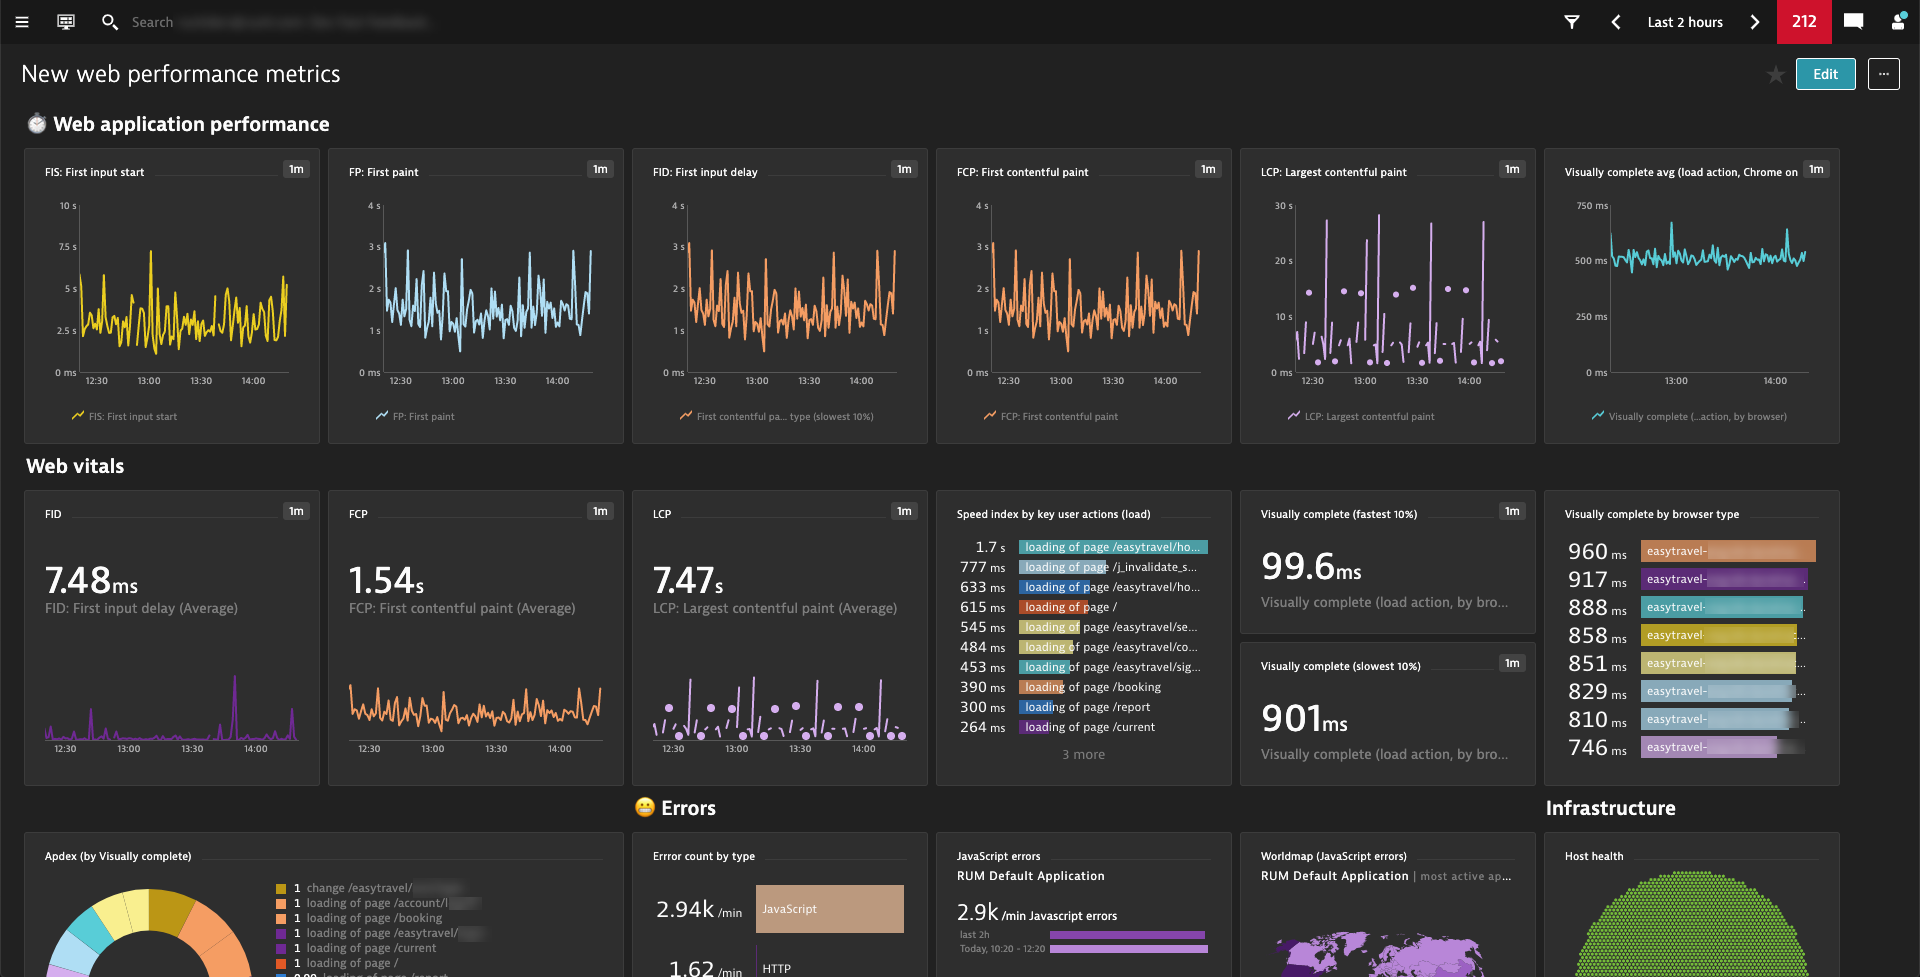 New web performance metrics in dashboards